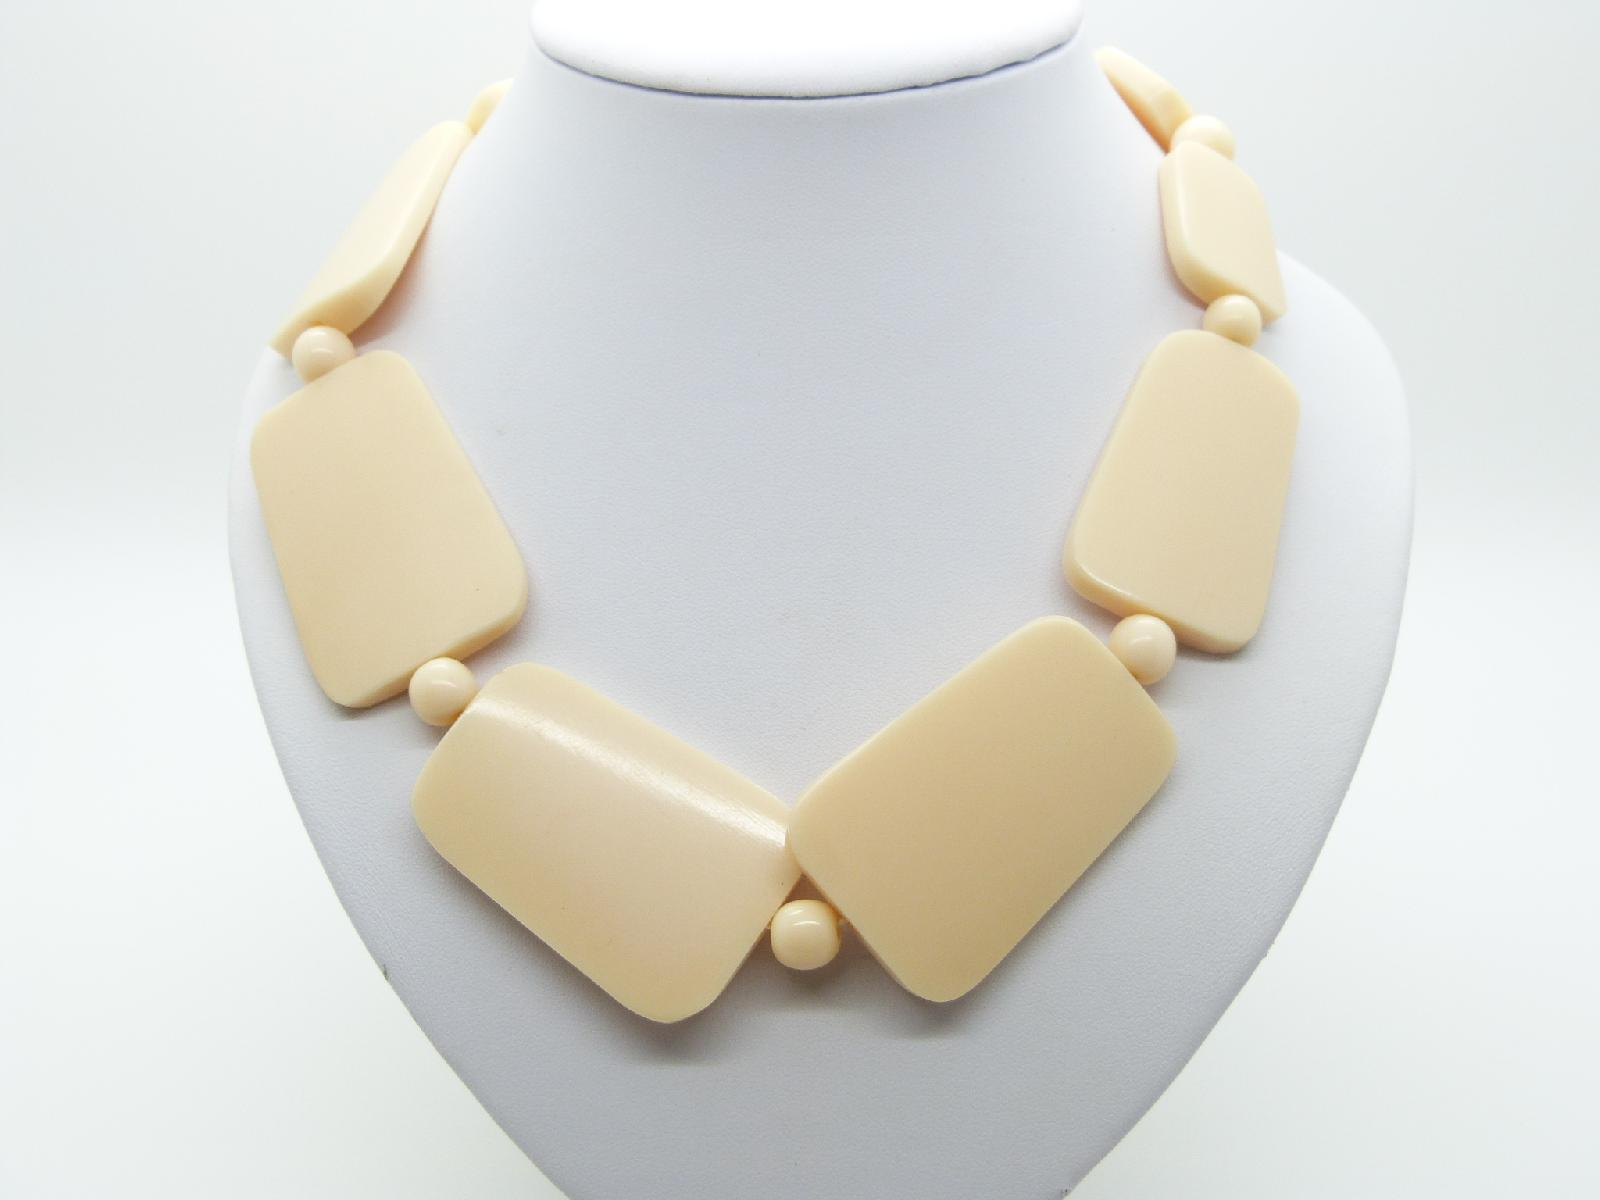 £13.00 - Stylish and Chic Chunky Cream Bead Acrylic Plastic Statement Necklace